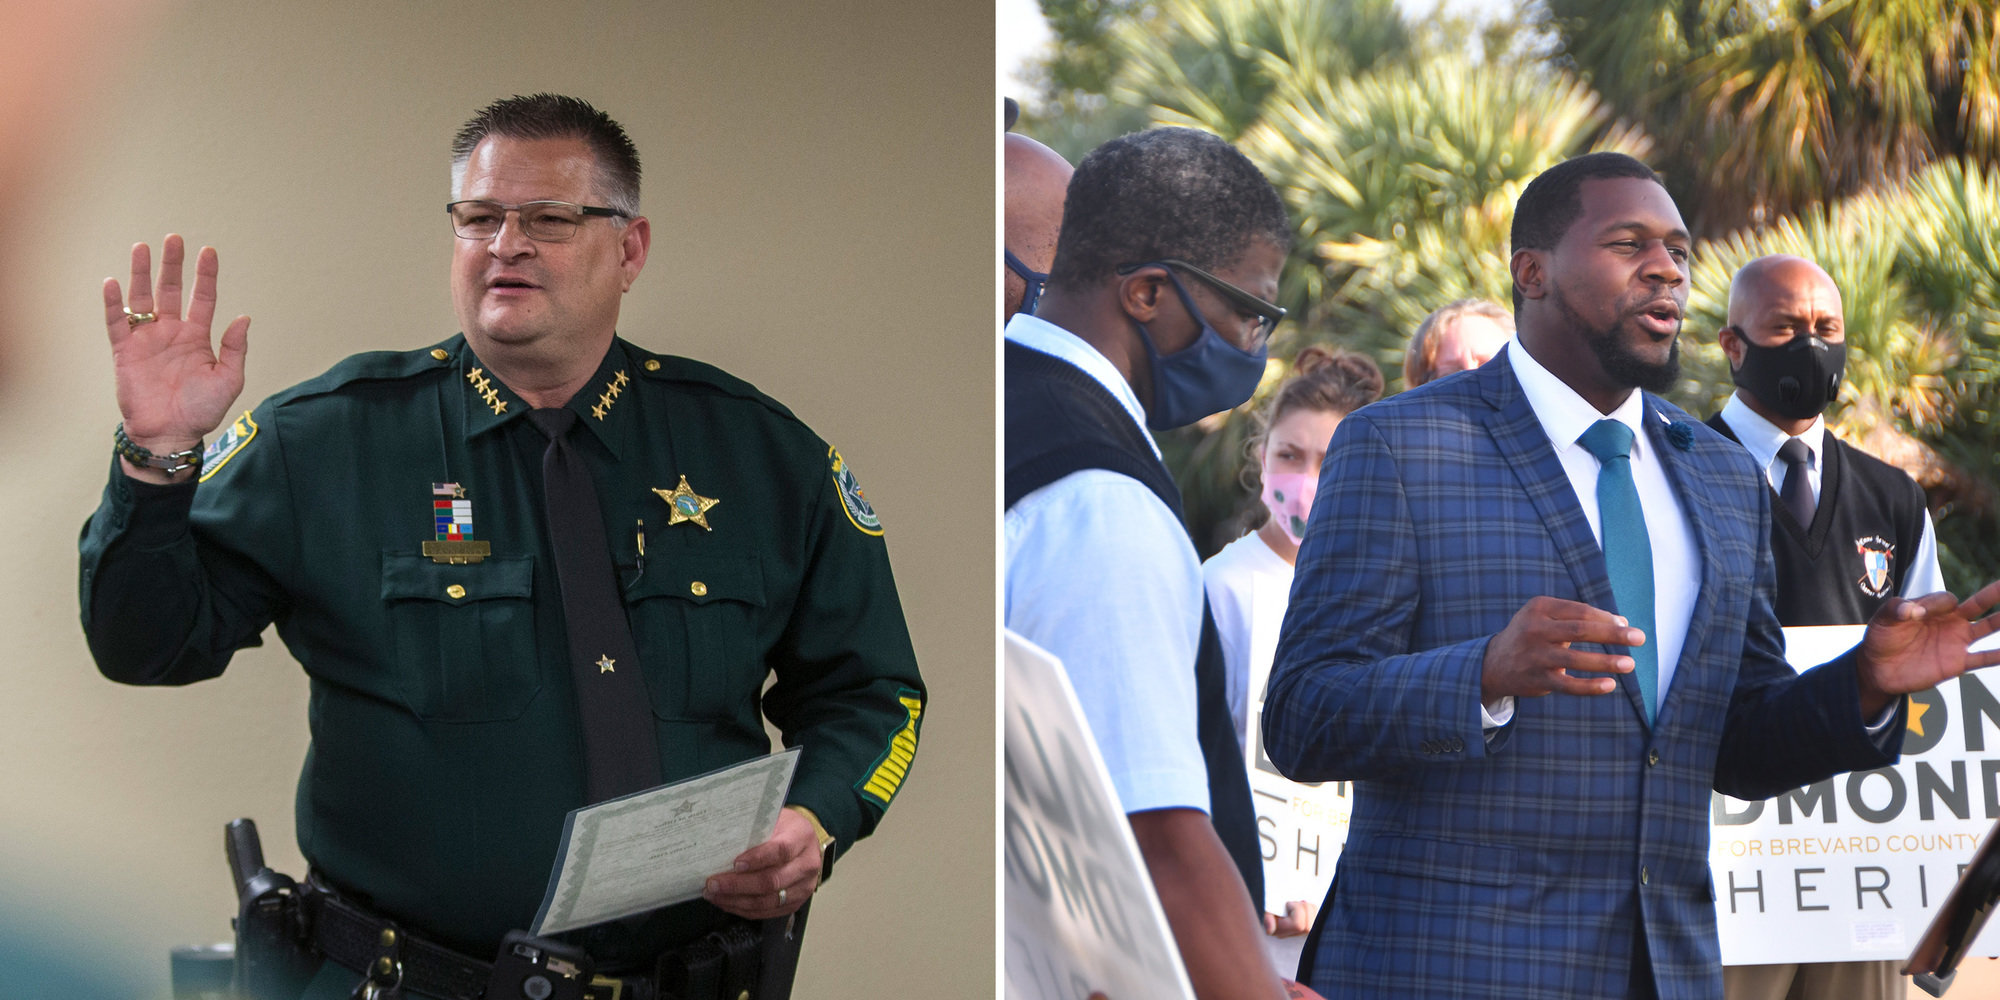 Sheriff Wayne Ivey of Brevard County, Florida, left, is facing Alton Edmond, a former public defender running as a Democrat in the sheriff's election in November.